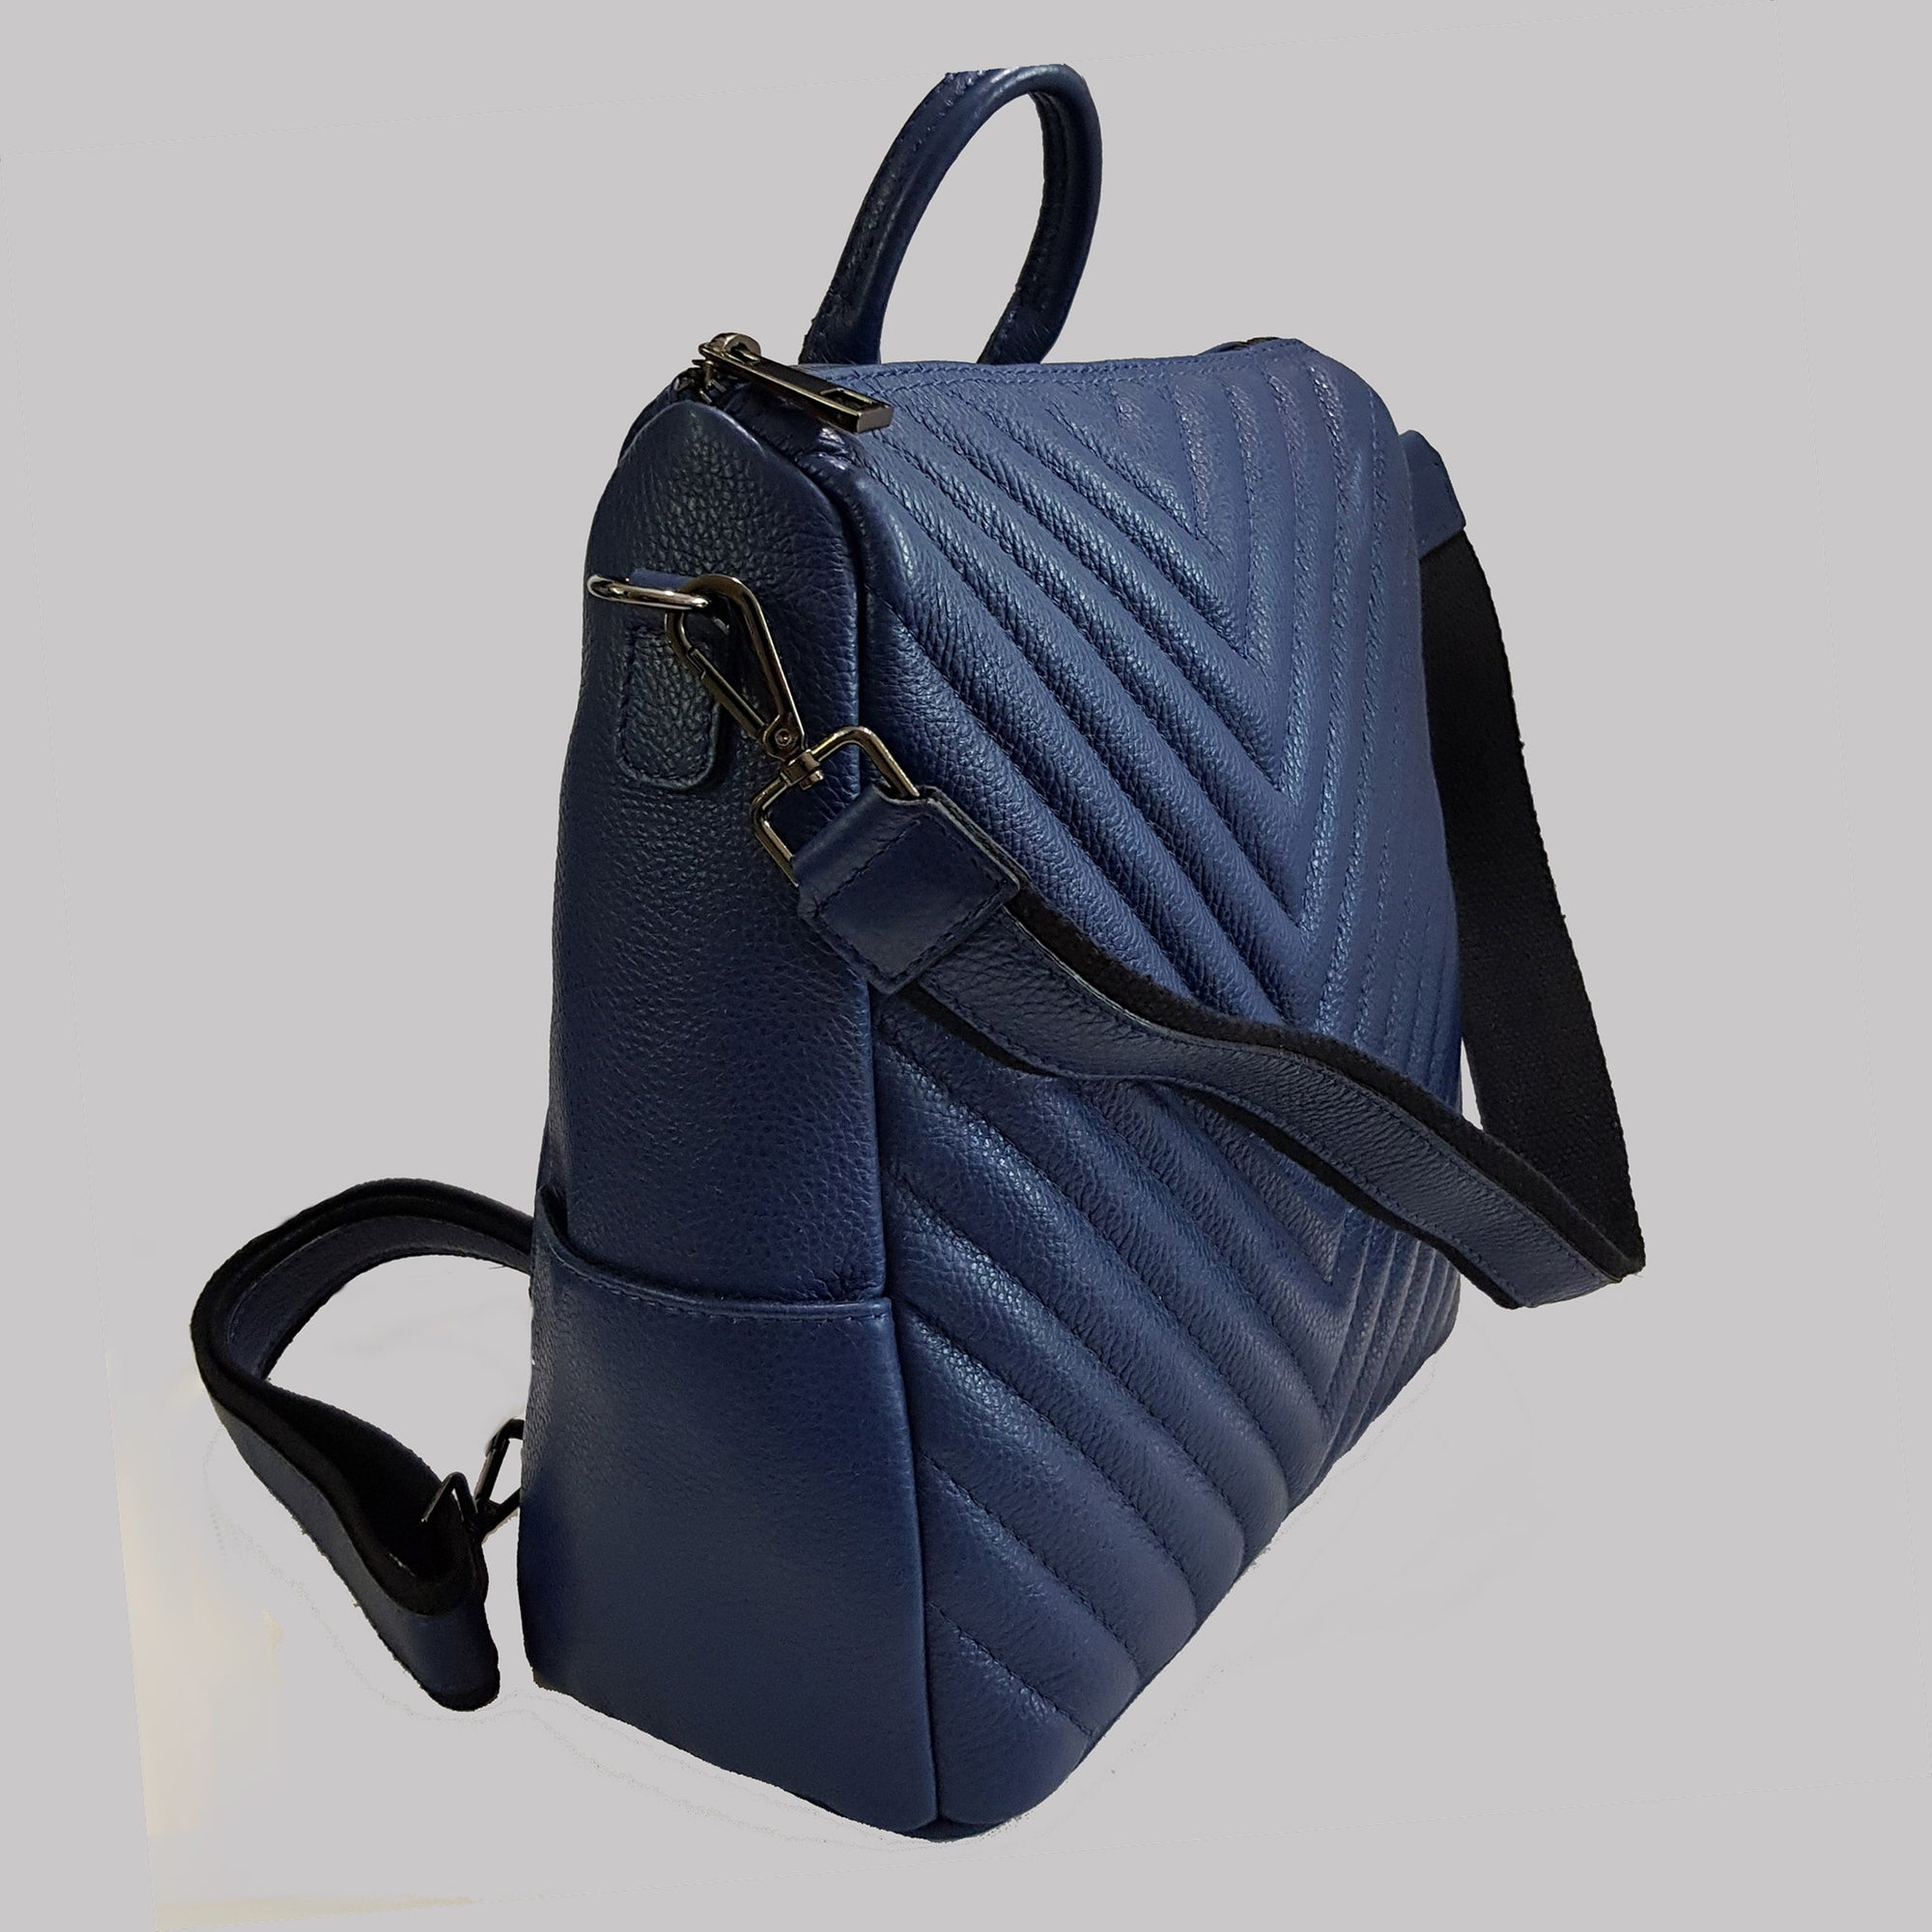 SALE Quilted Convertible Backpack / Shoulder Bag / Top Handle Bag